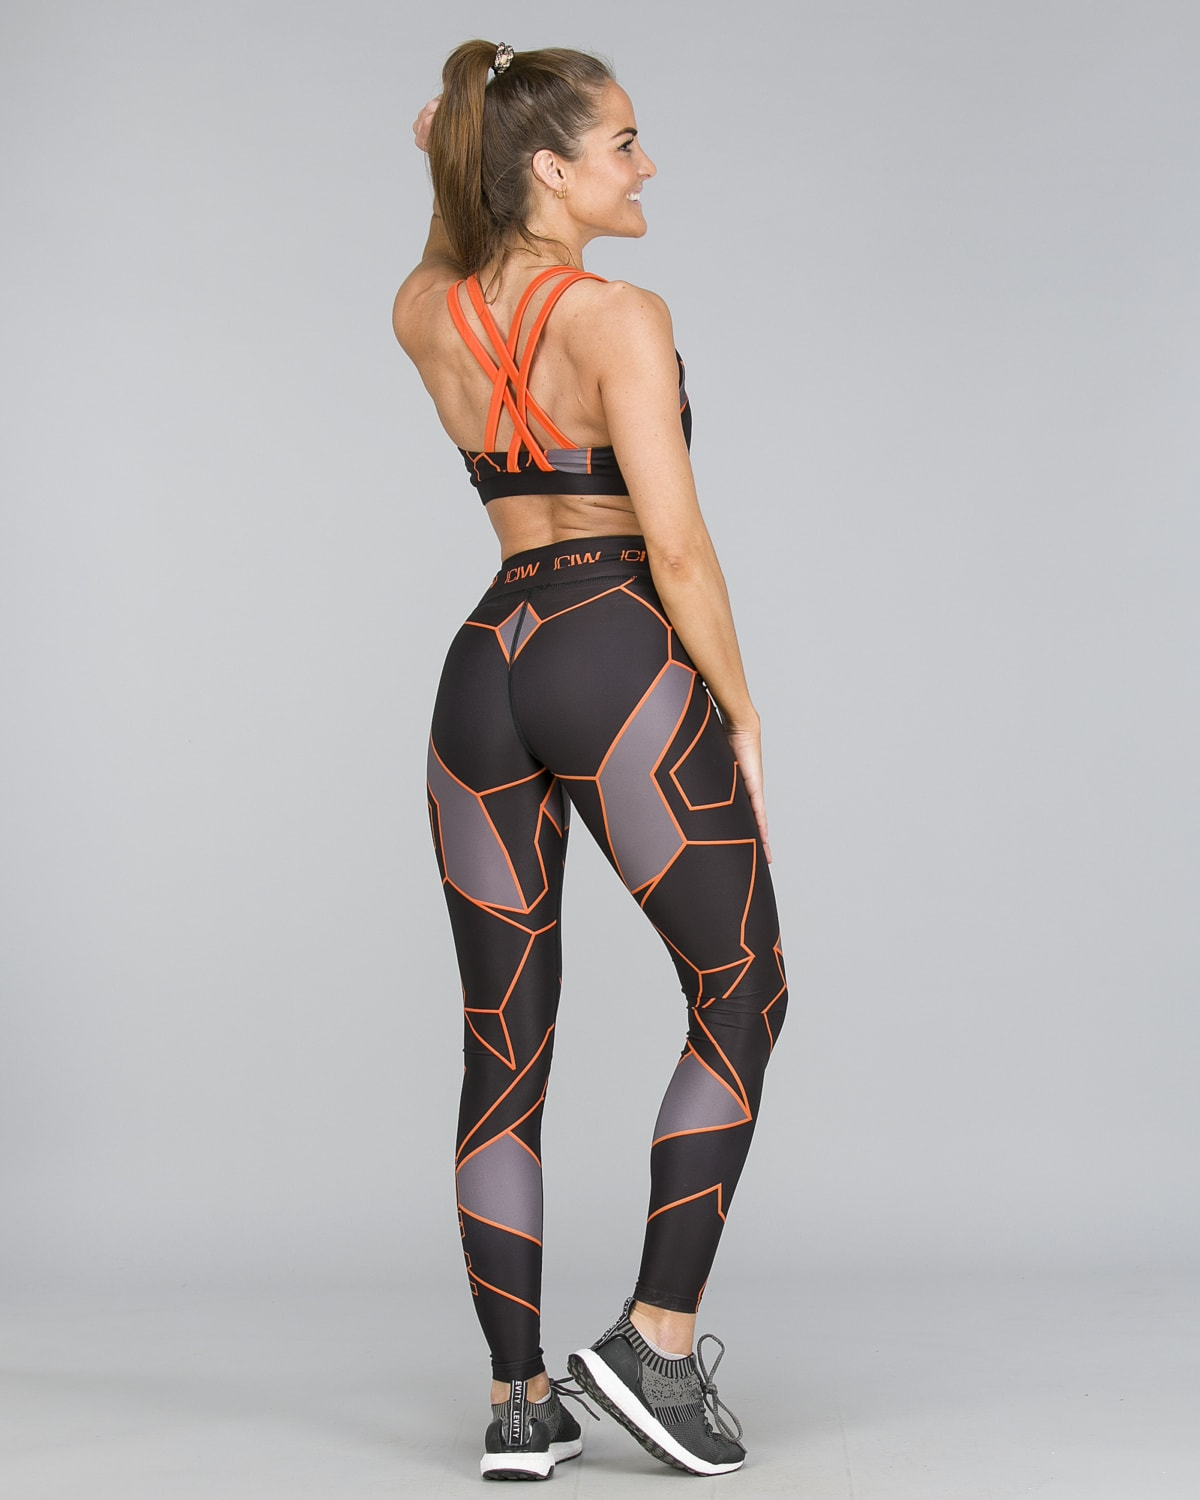 ICANIWILL – Orange Camo Tights a